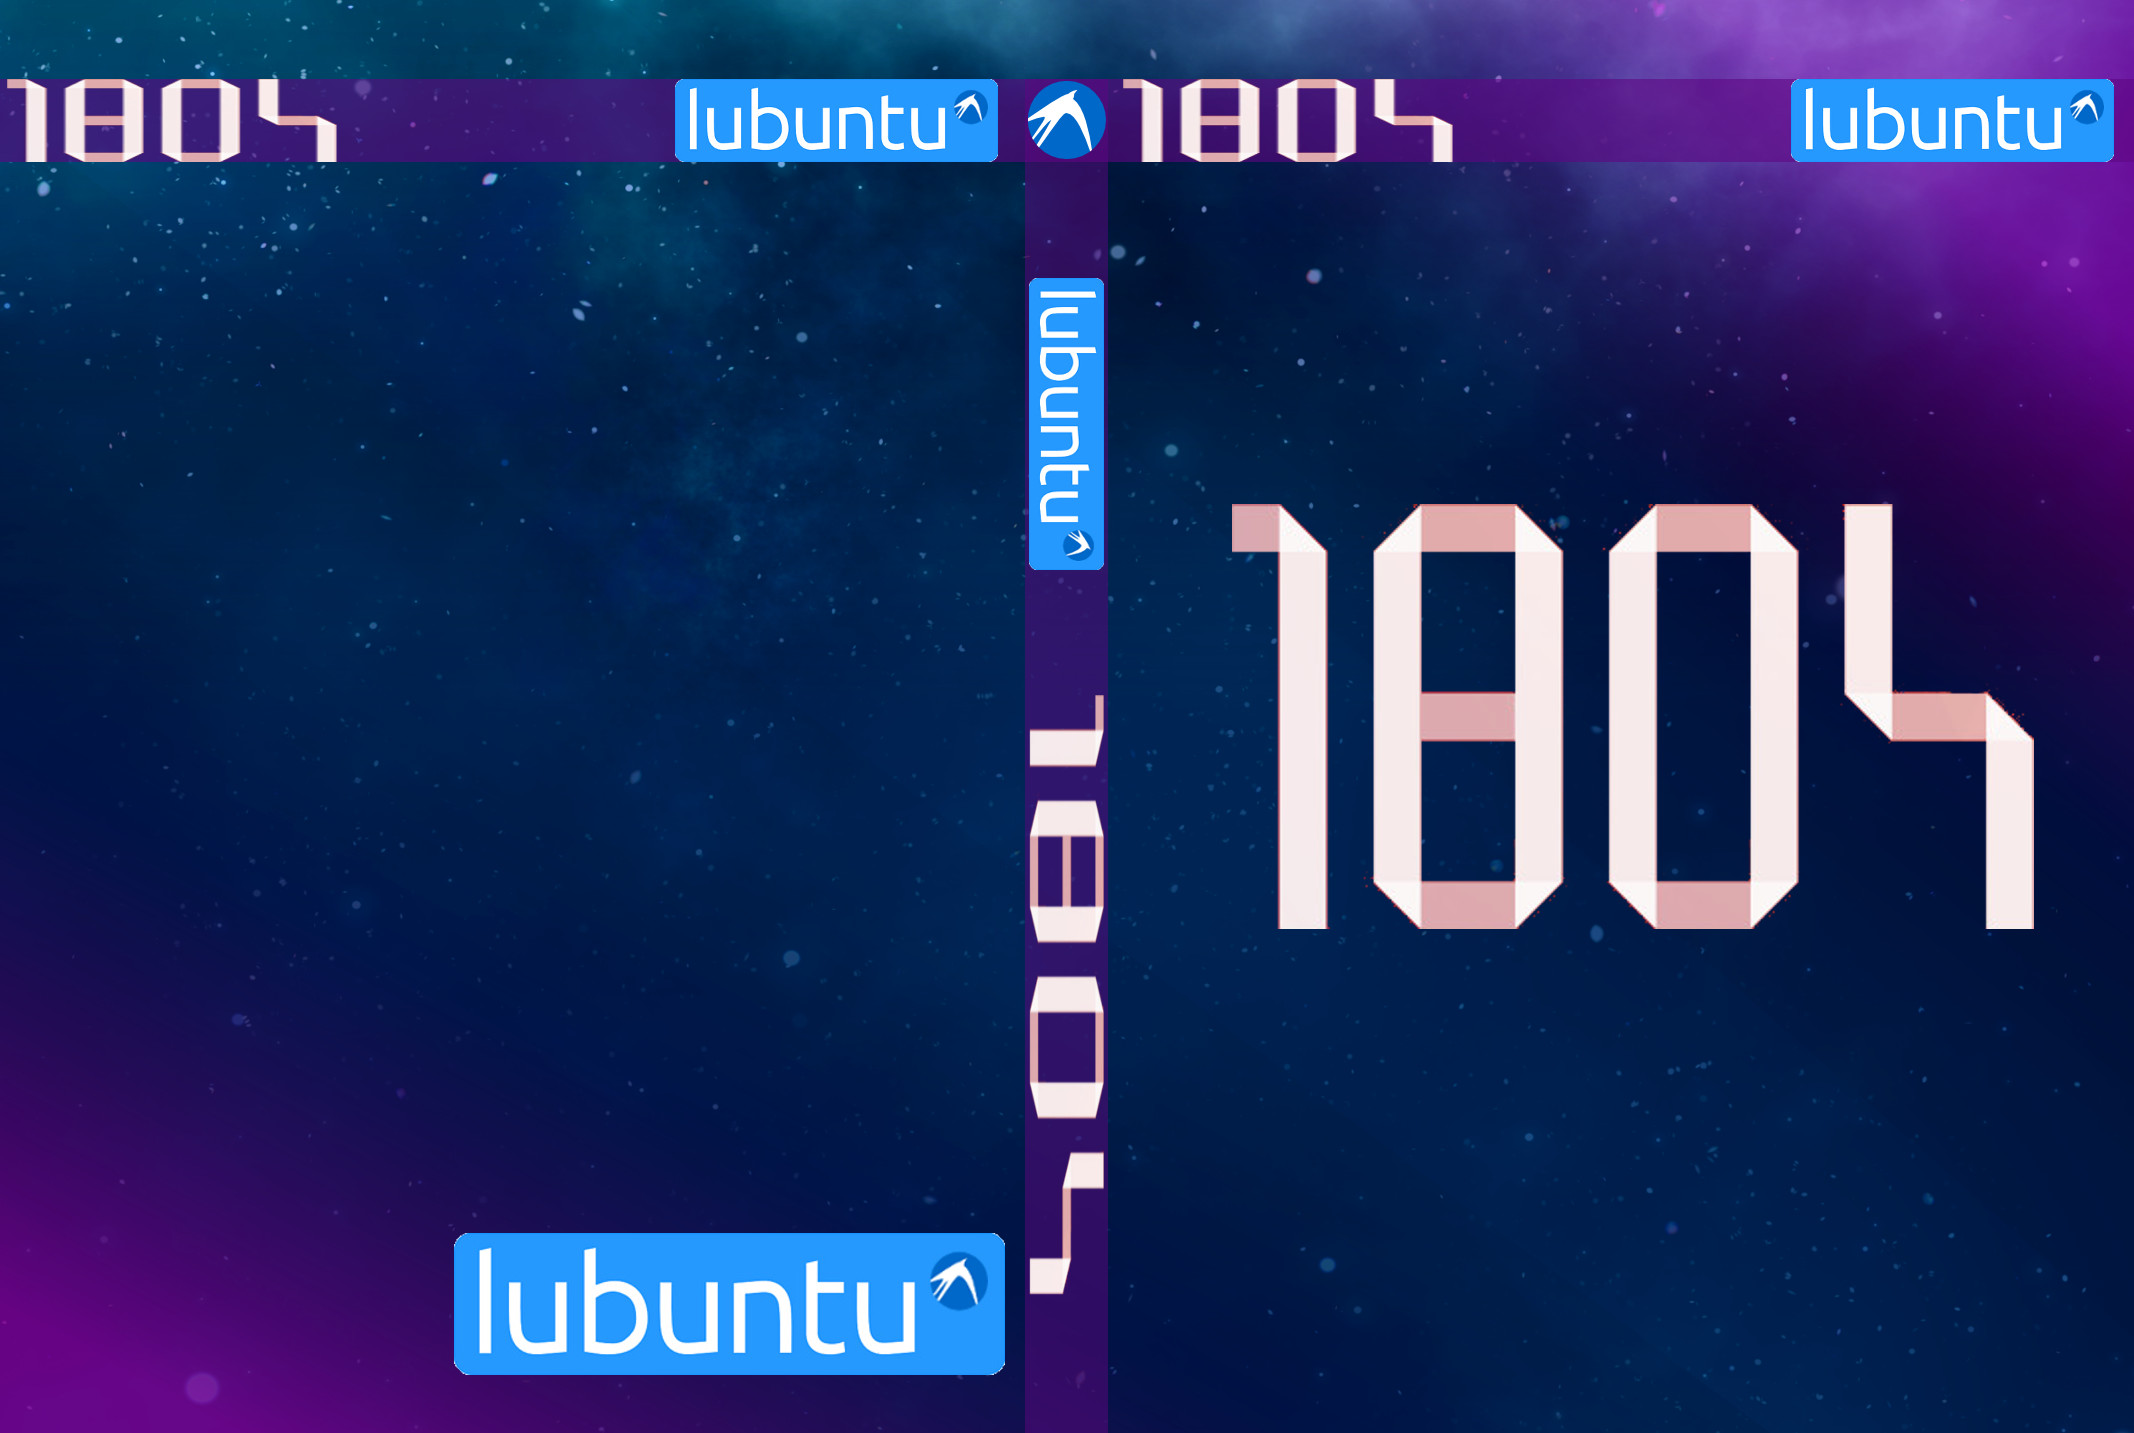 Lubuntu 18 04 DVD Cover by ardouronerous on DeviantArt